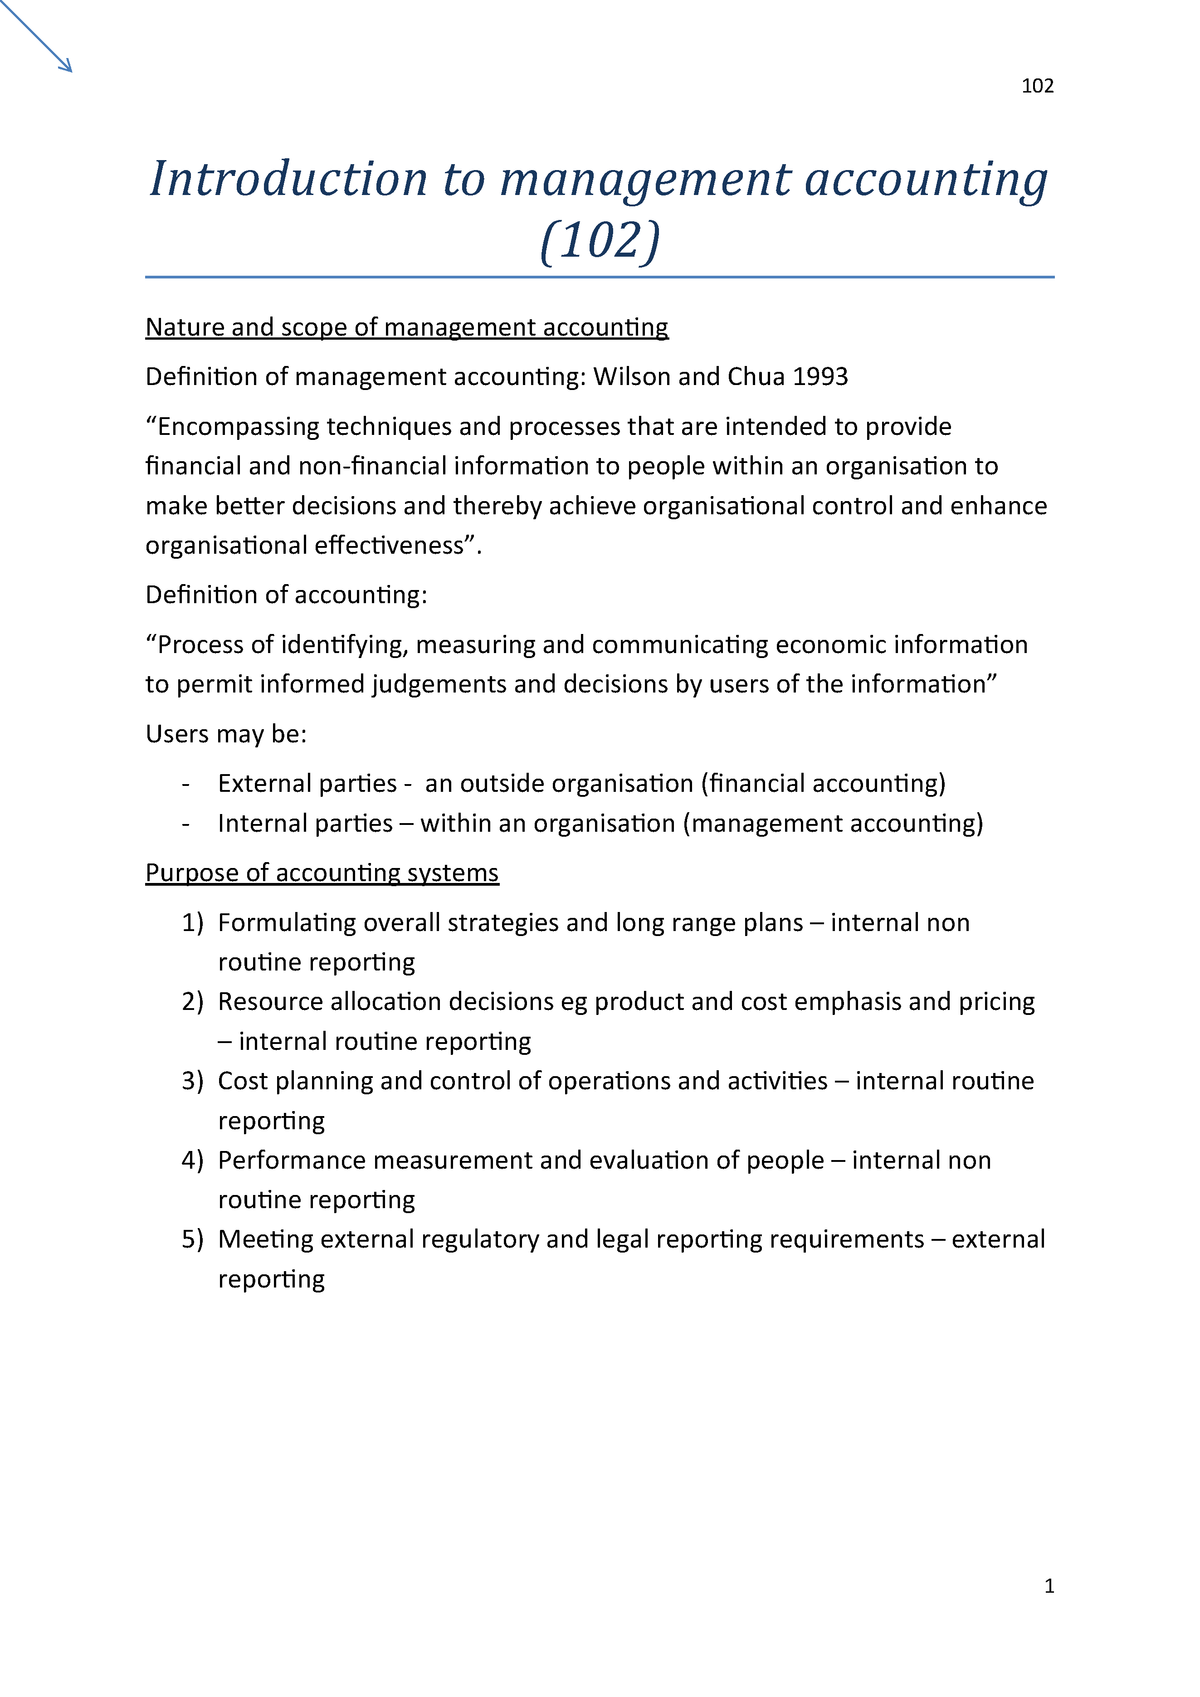 Introduction To Management Accounting Notes - Lecture notes